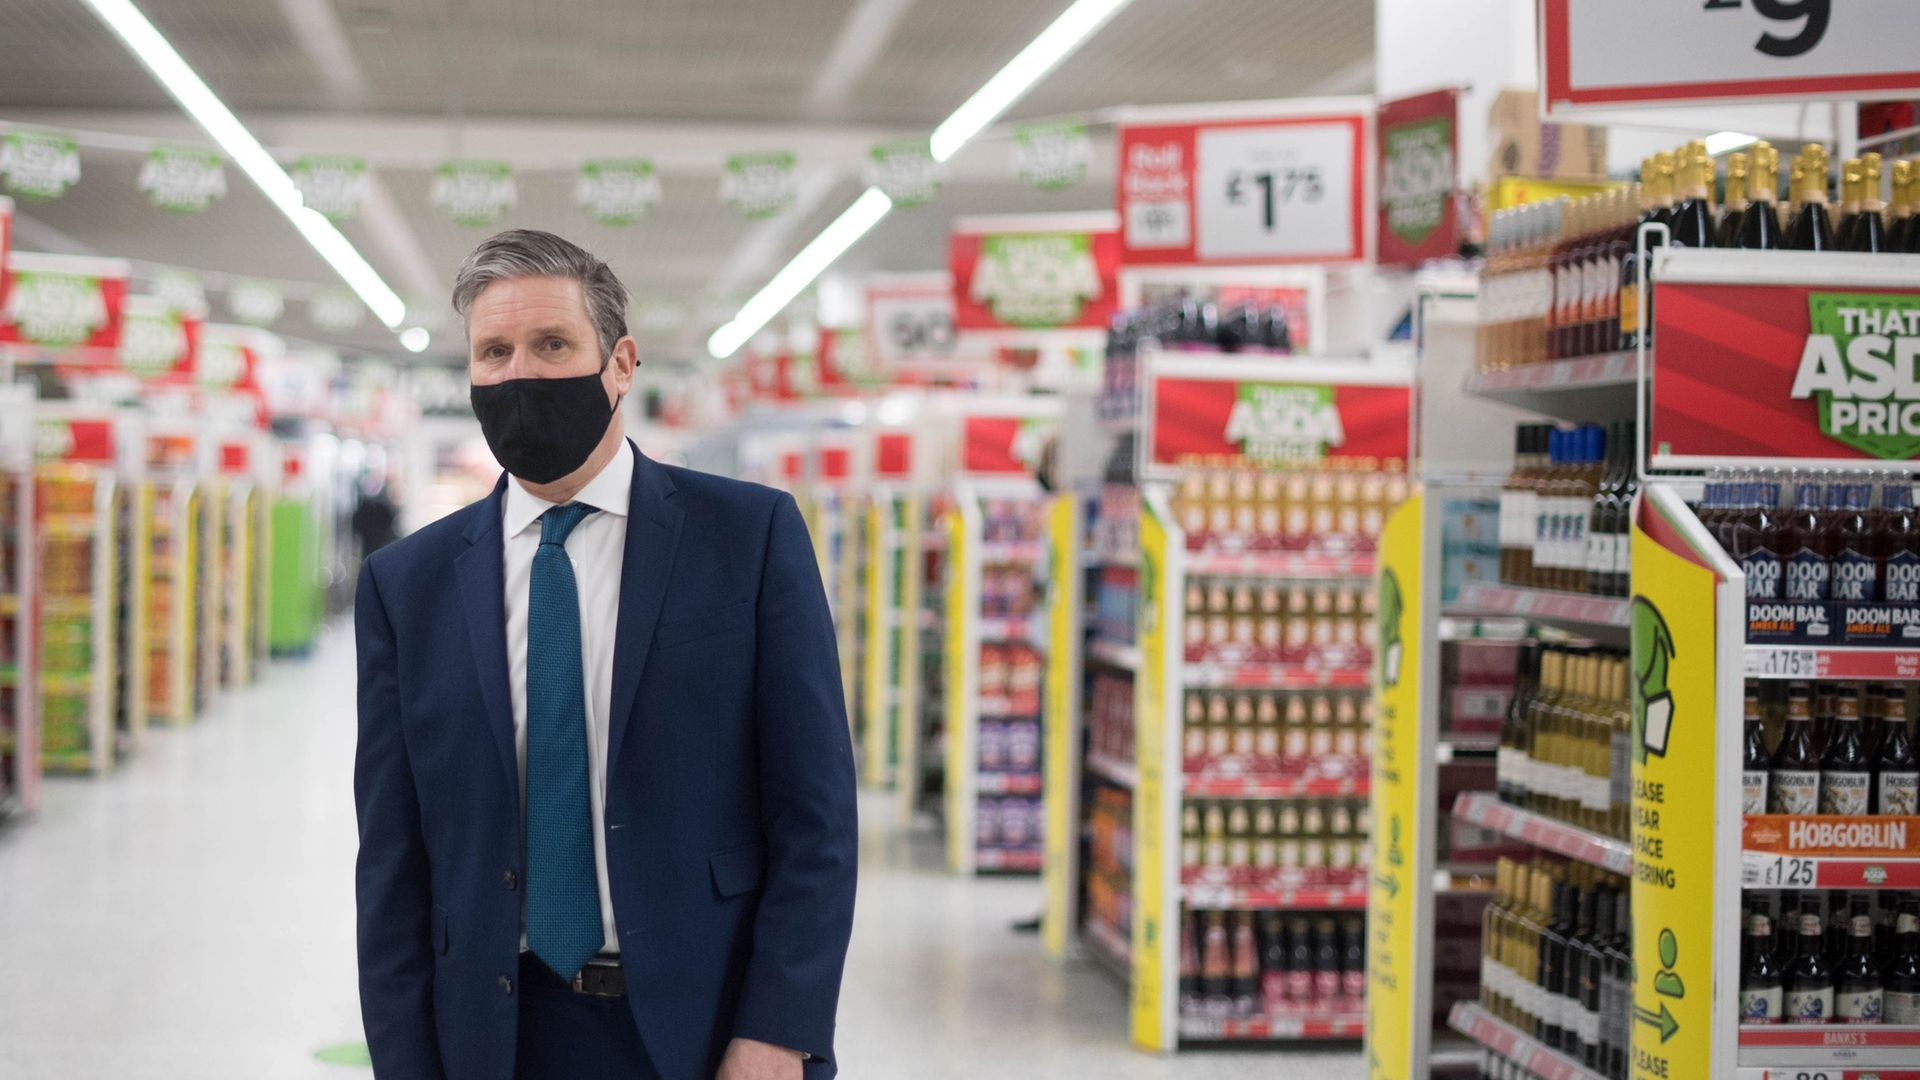 CHECKING OUT?: Keir Starmer during a visit to a community pharmacy vaccination centre set up inside an ASDA supermarket in Watford - Credit: POOL/AFP via Getty Images